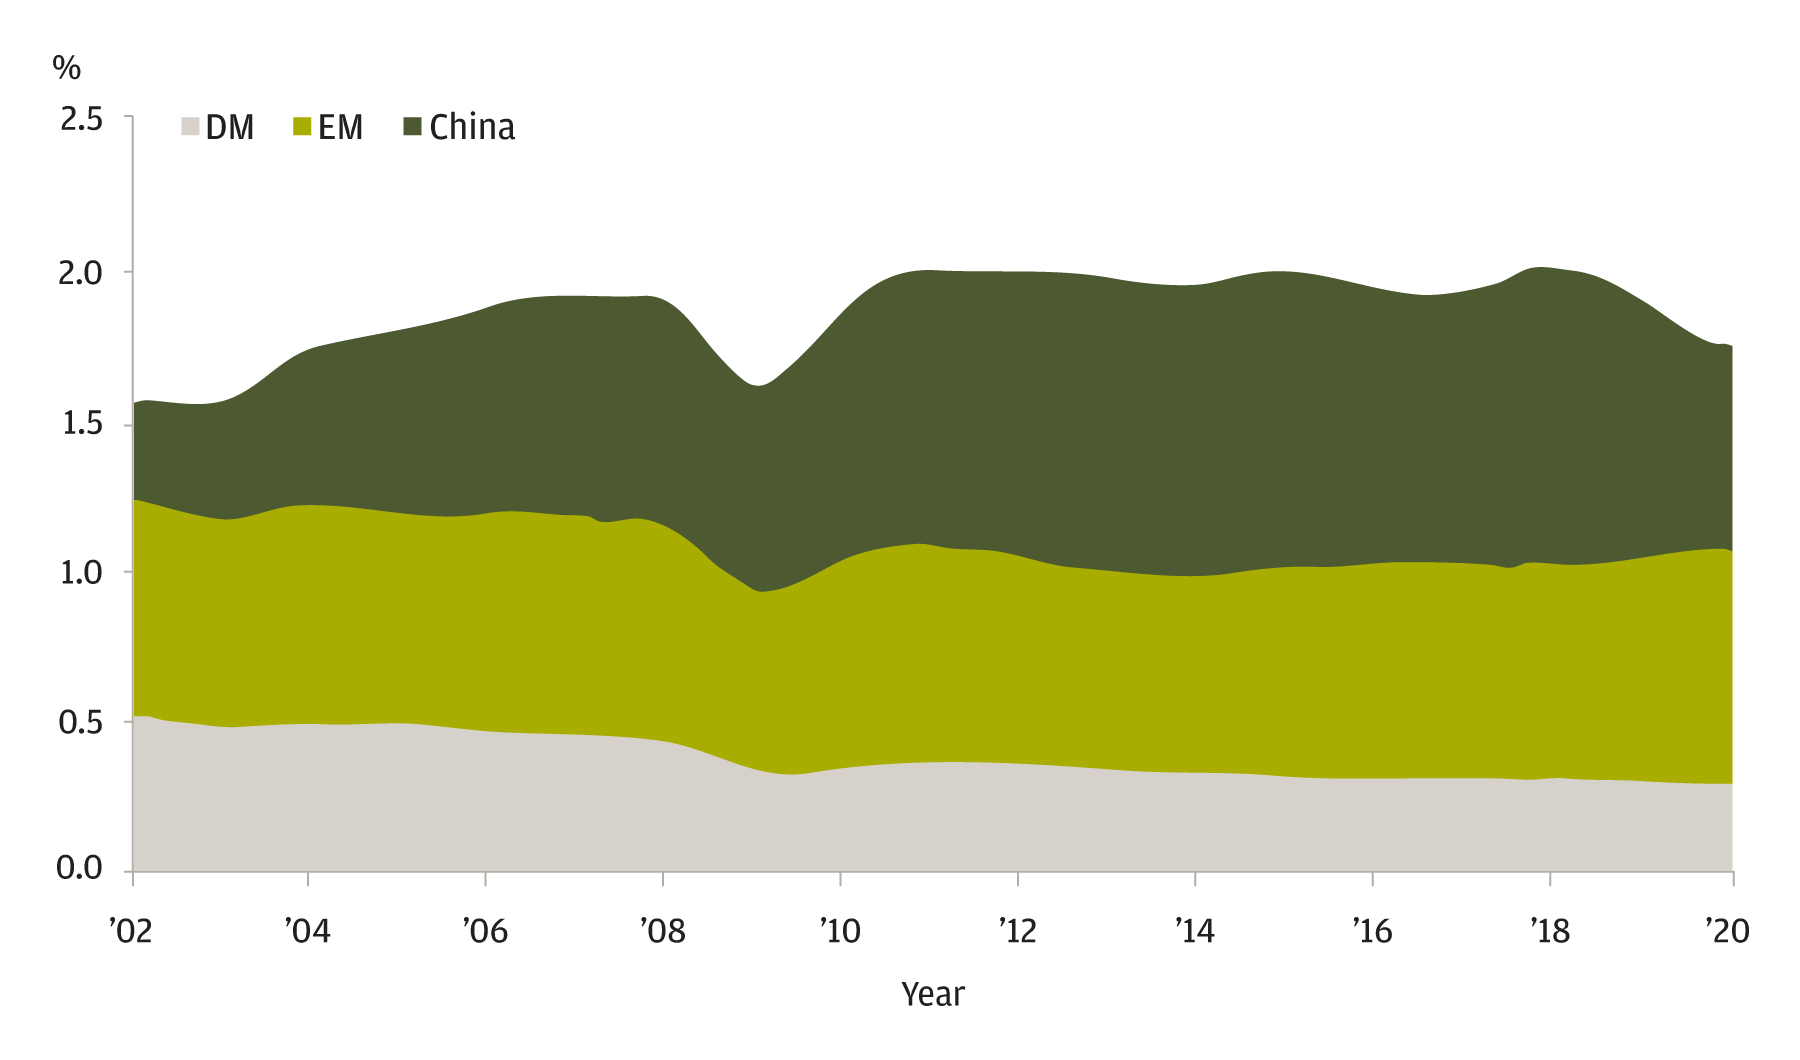 The chart displays the share of all U.S. electronic imports originating in emerging markets (EM), developed markets (DM) and China from 2002 through 2020. During this time period, Emerging markets (EM) has gone up over the past two years.